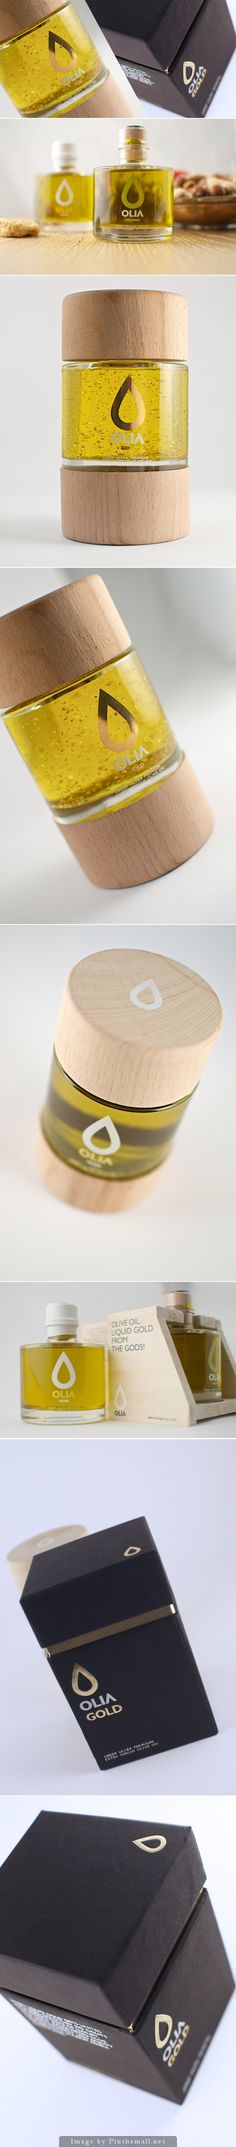 OLIA Olive Oil packaging | looks luxurious like a bottle of perfume